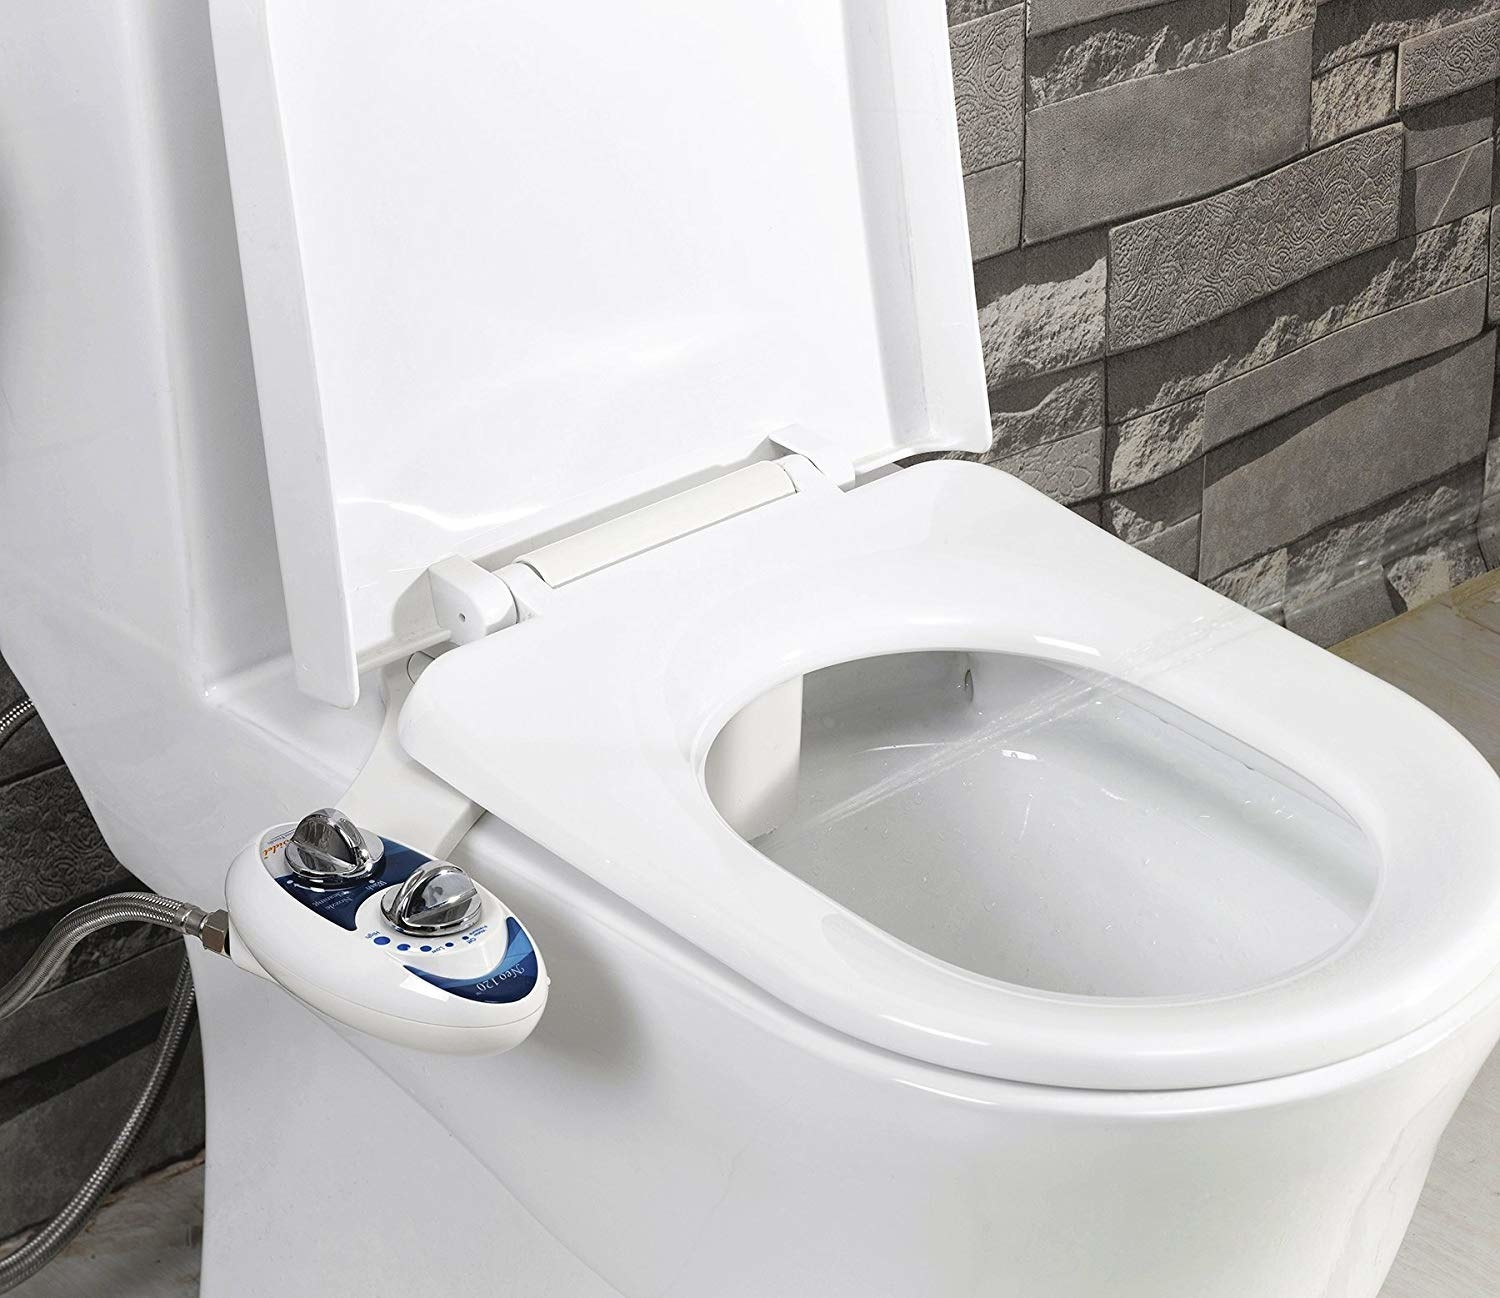 product photo showing the bidet attached to a toilet